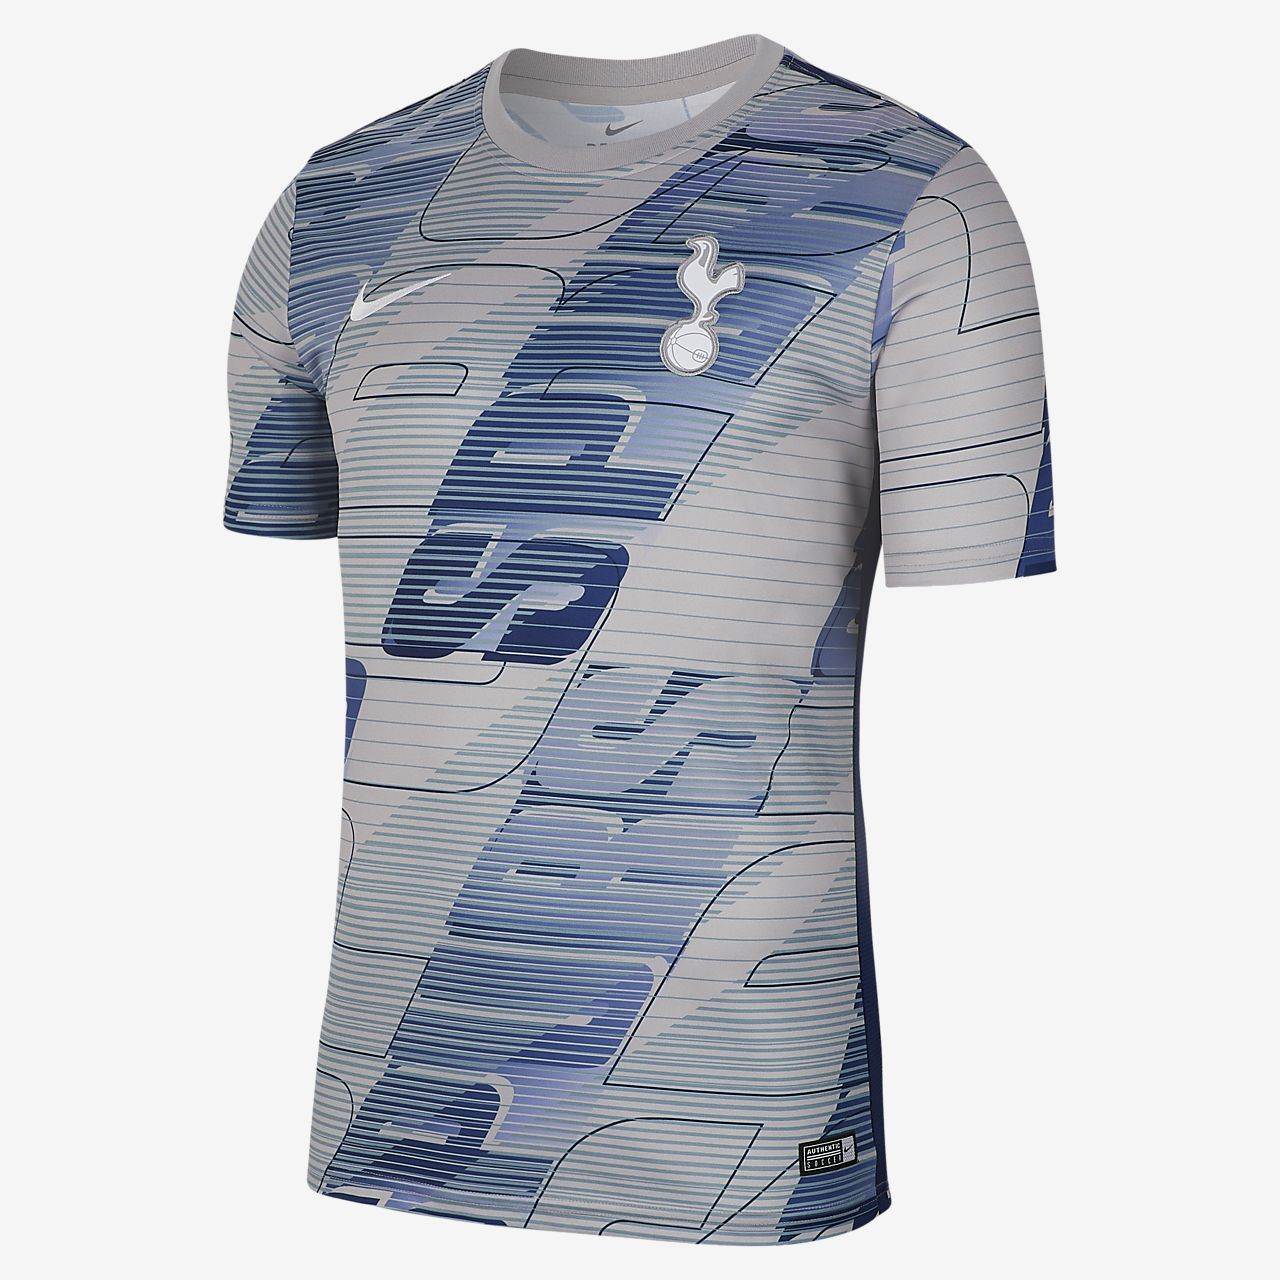 Tottenham Hotspur Men's Short-Sleeve Football Top